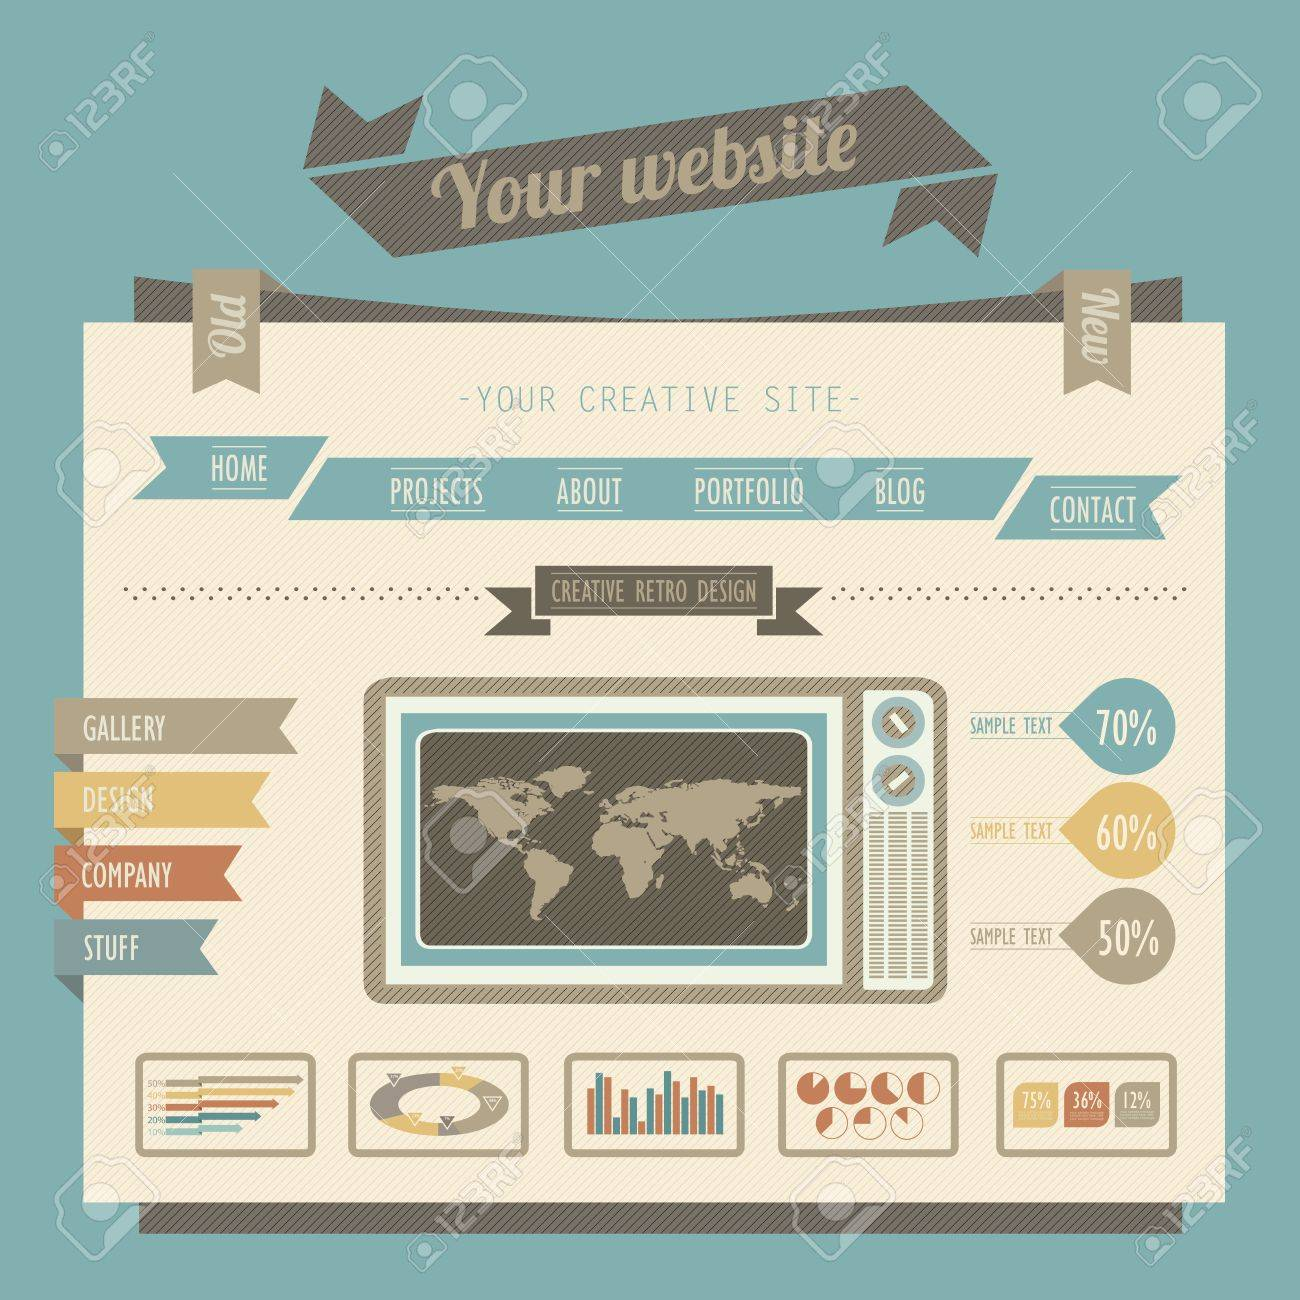 Vintage Style Website Templates Royalty Free Cliparts, Vectors ...